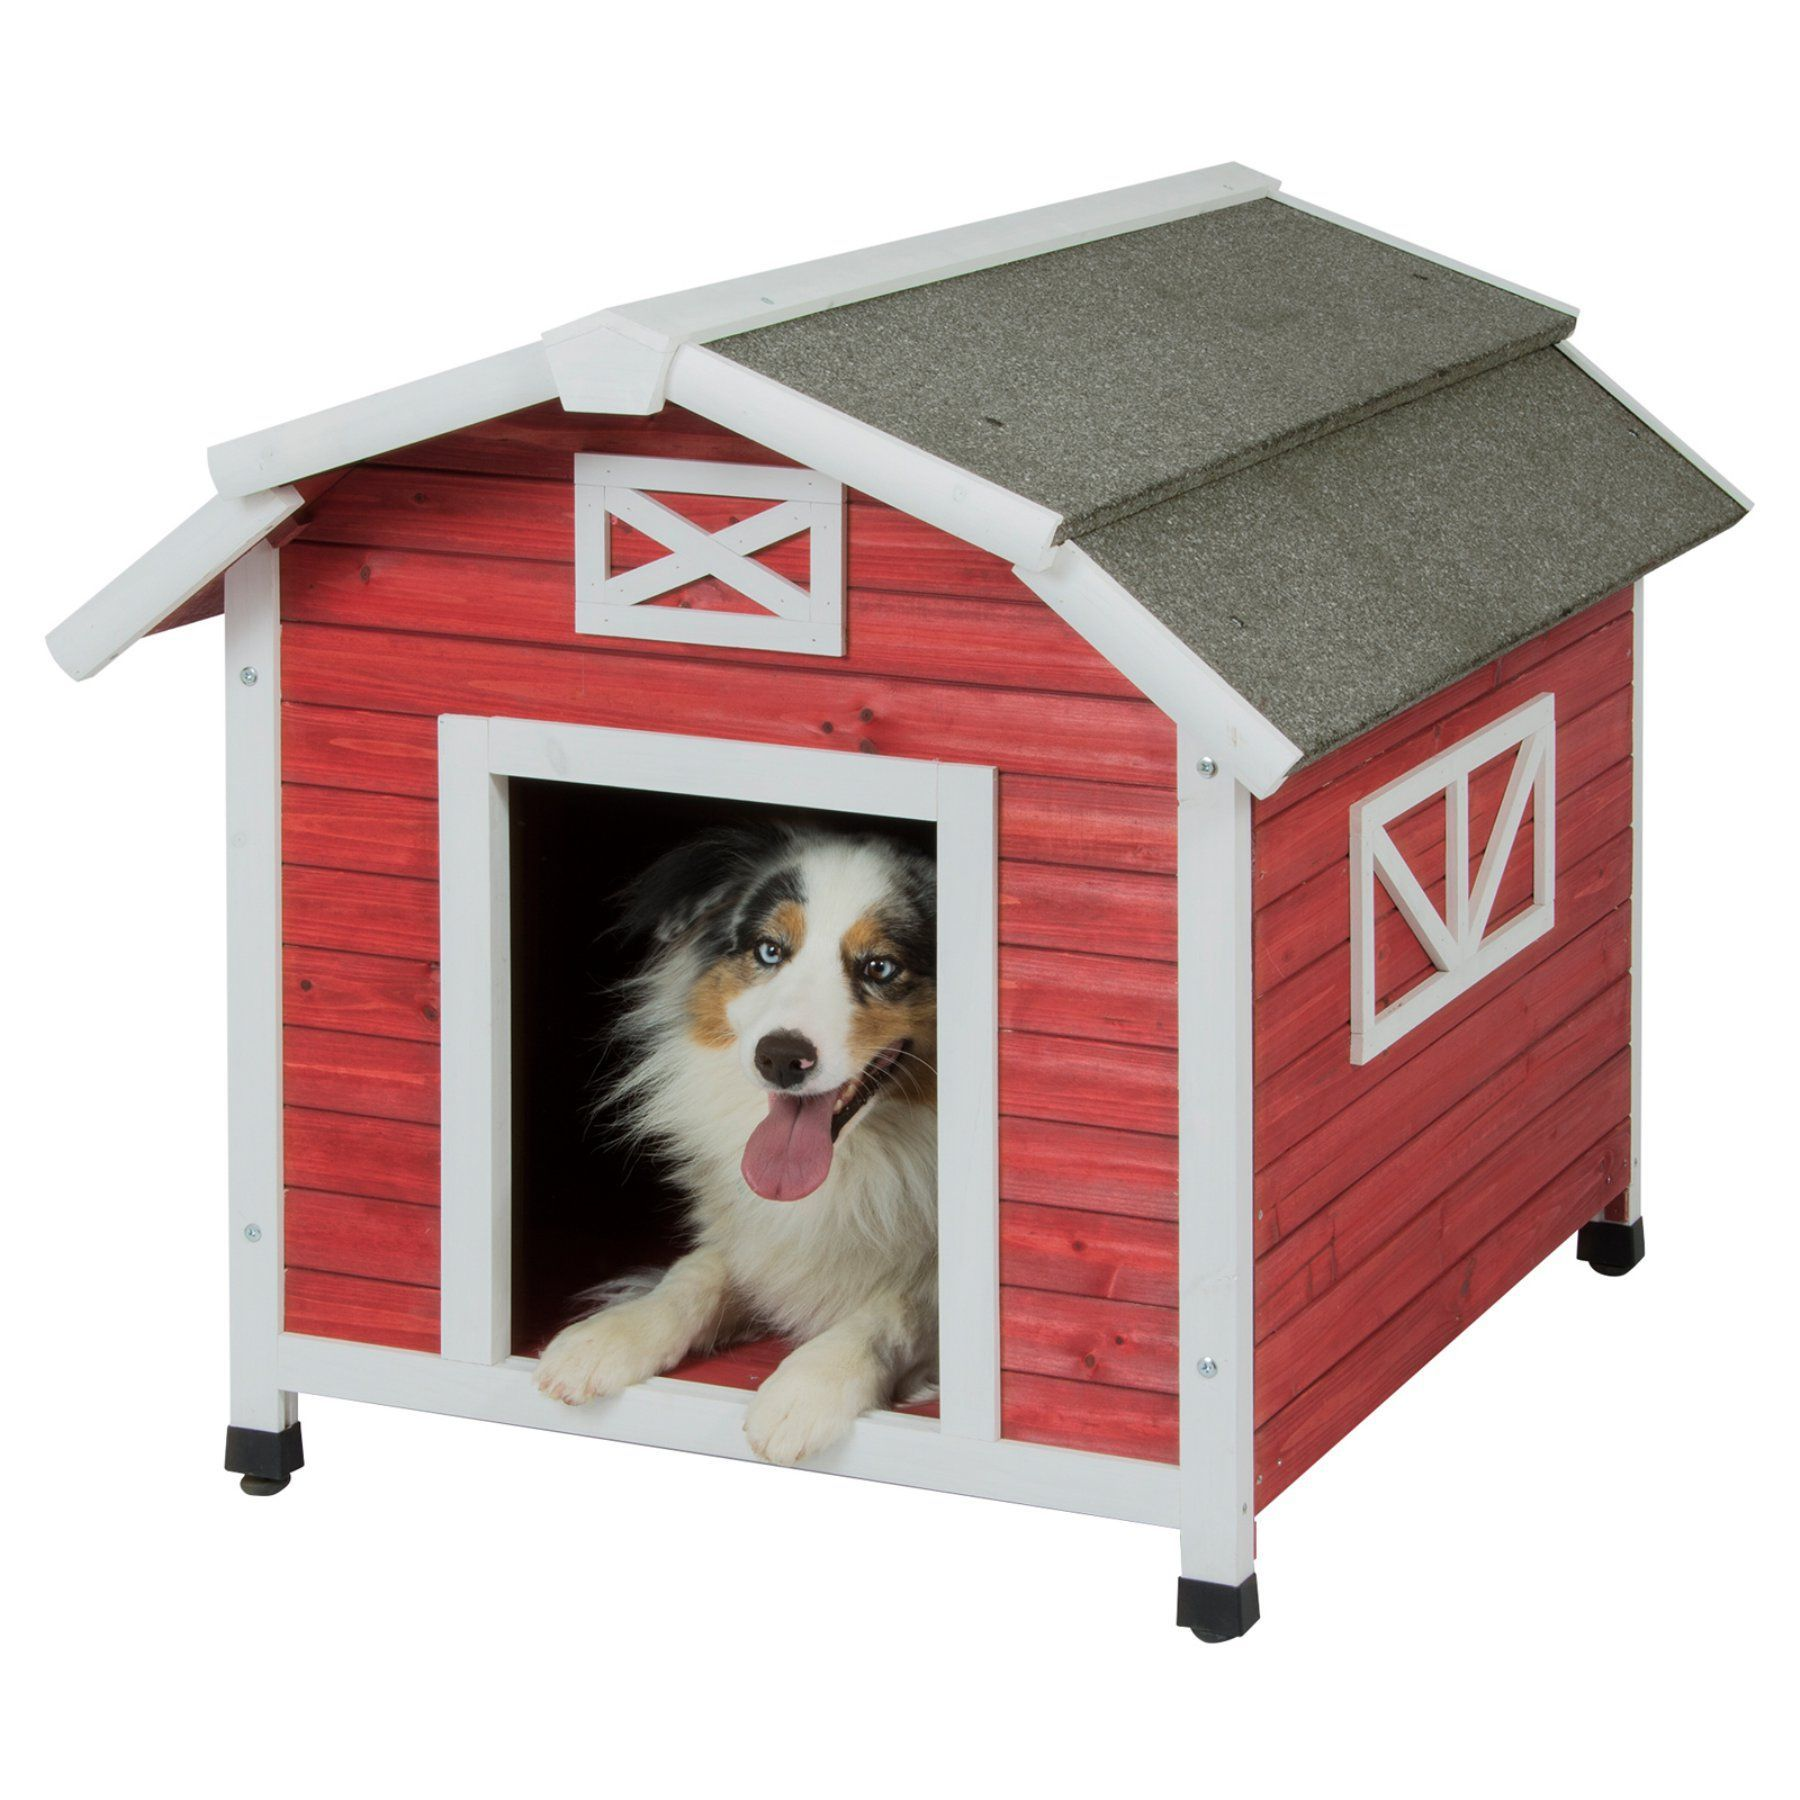 Precision Pet Barn Dog House For Large Dogs 7027120 Products Dog Houses Large Dog House Cool Dog Houses